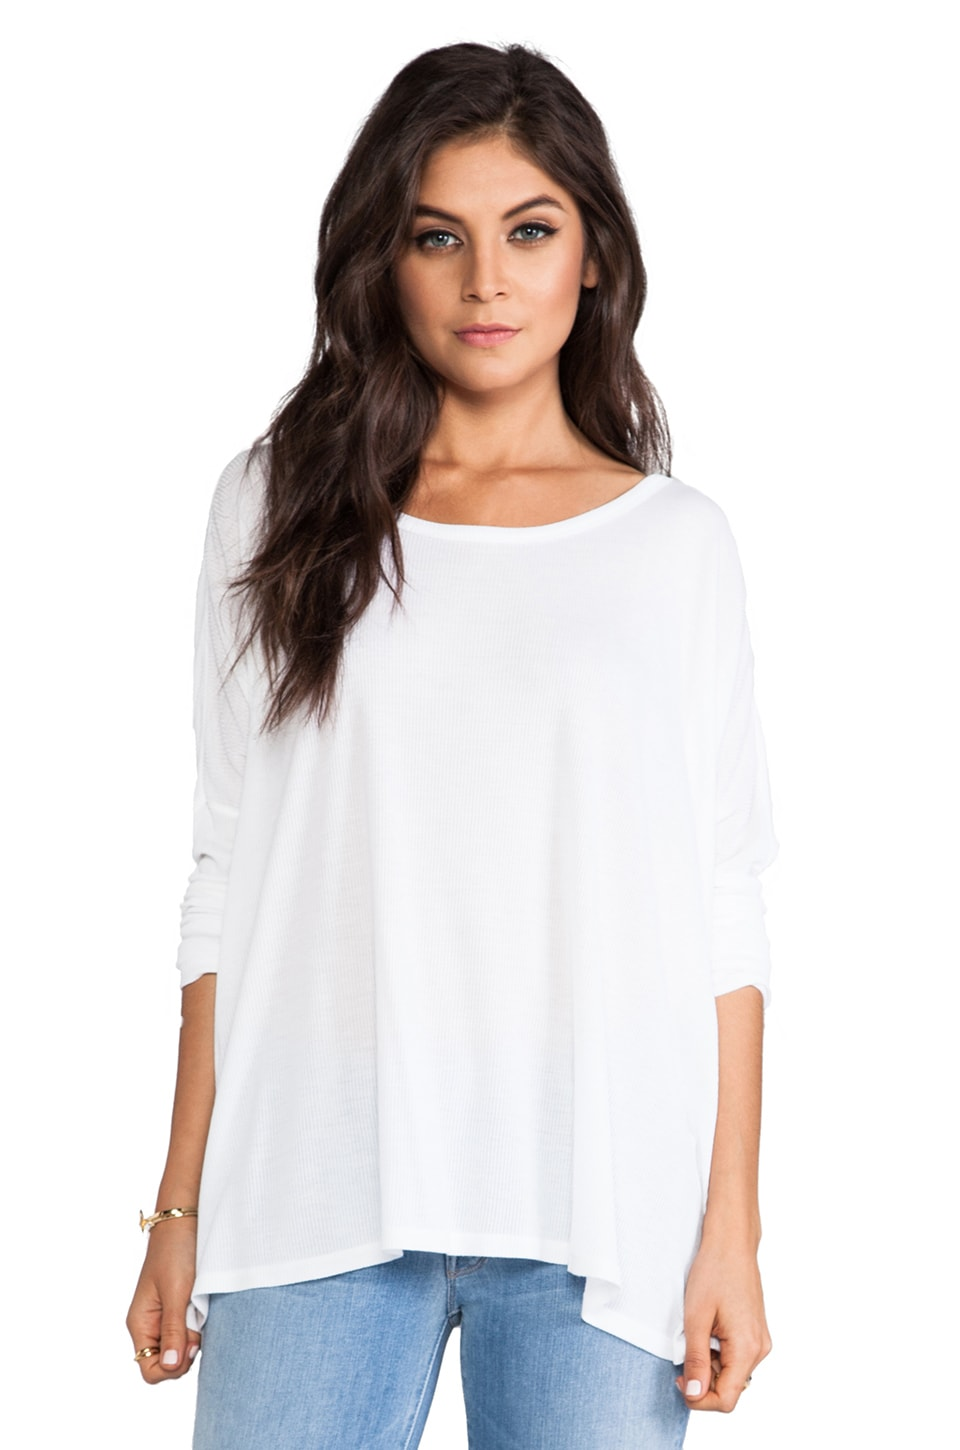 Saint Grace Omega Oversized Top in White